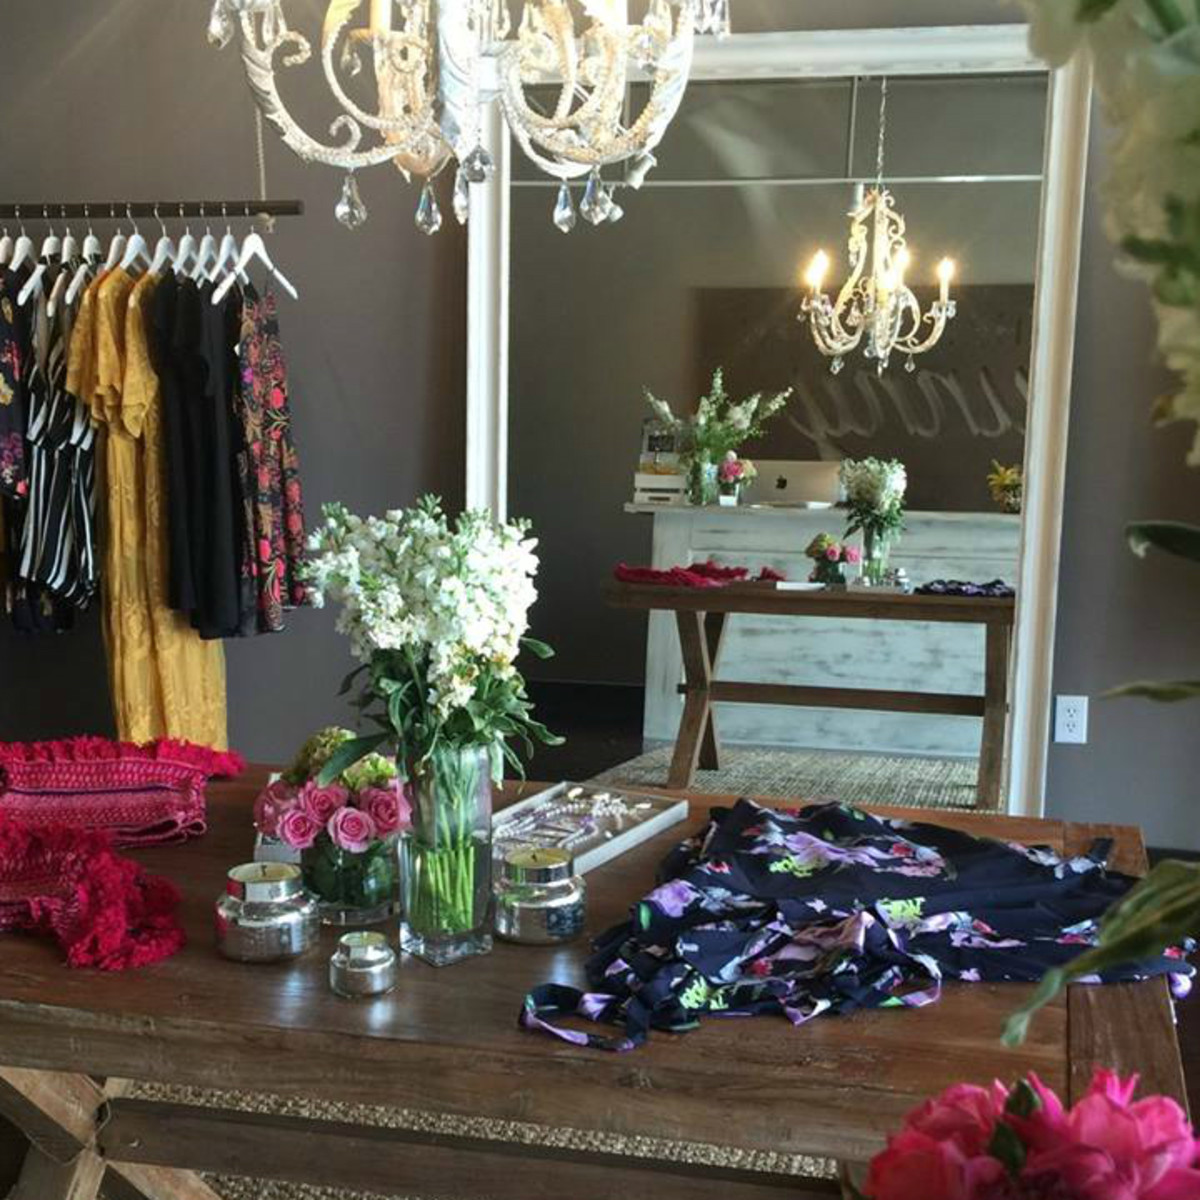 The Southern Bunny San Antonio shop interior dresses